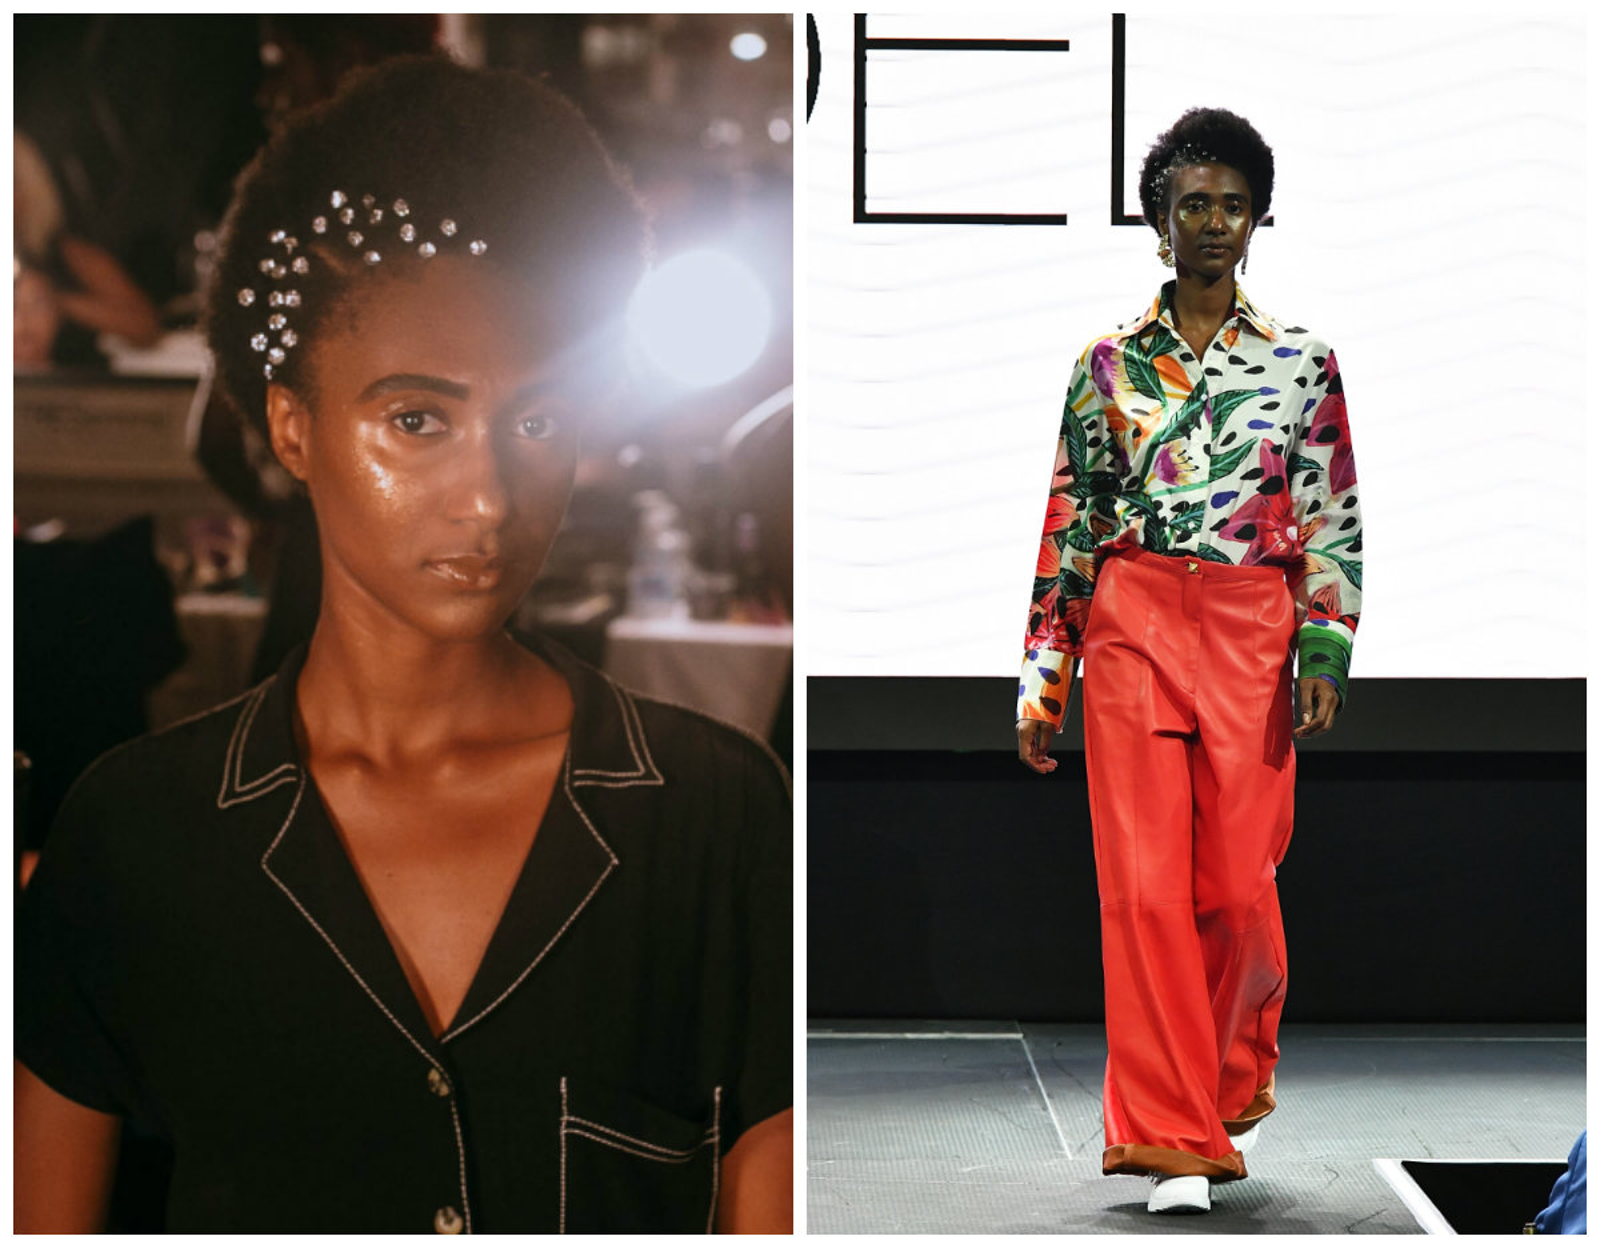 (L-R) Before and after: A model pre-show; the same model walks the runway at Fe Noel's fashion show during New York Fashion Week on September 4, 2018 in New York City.